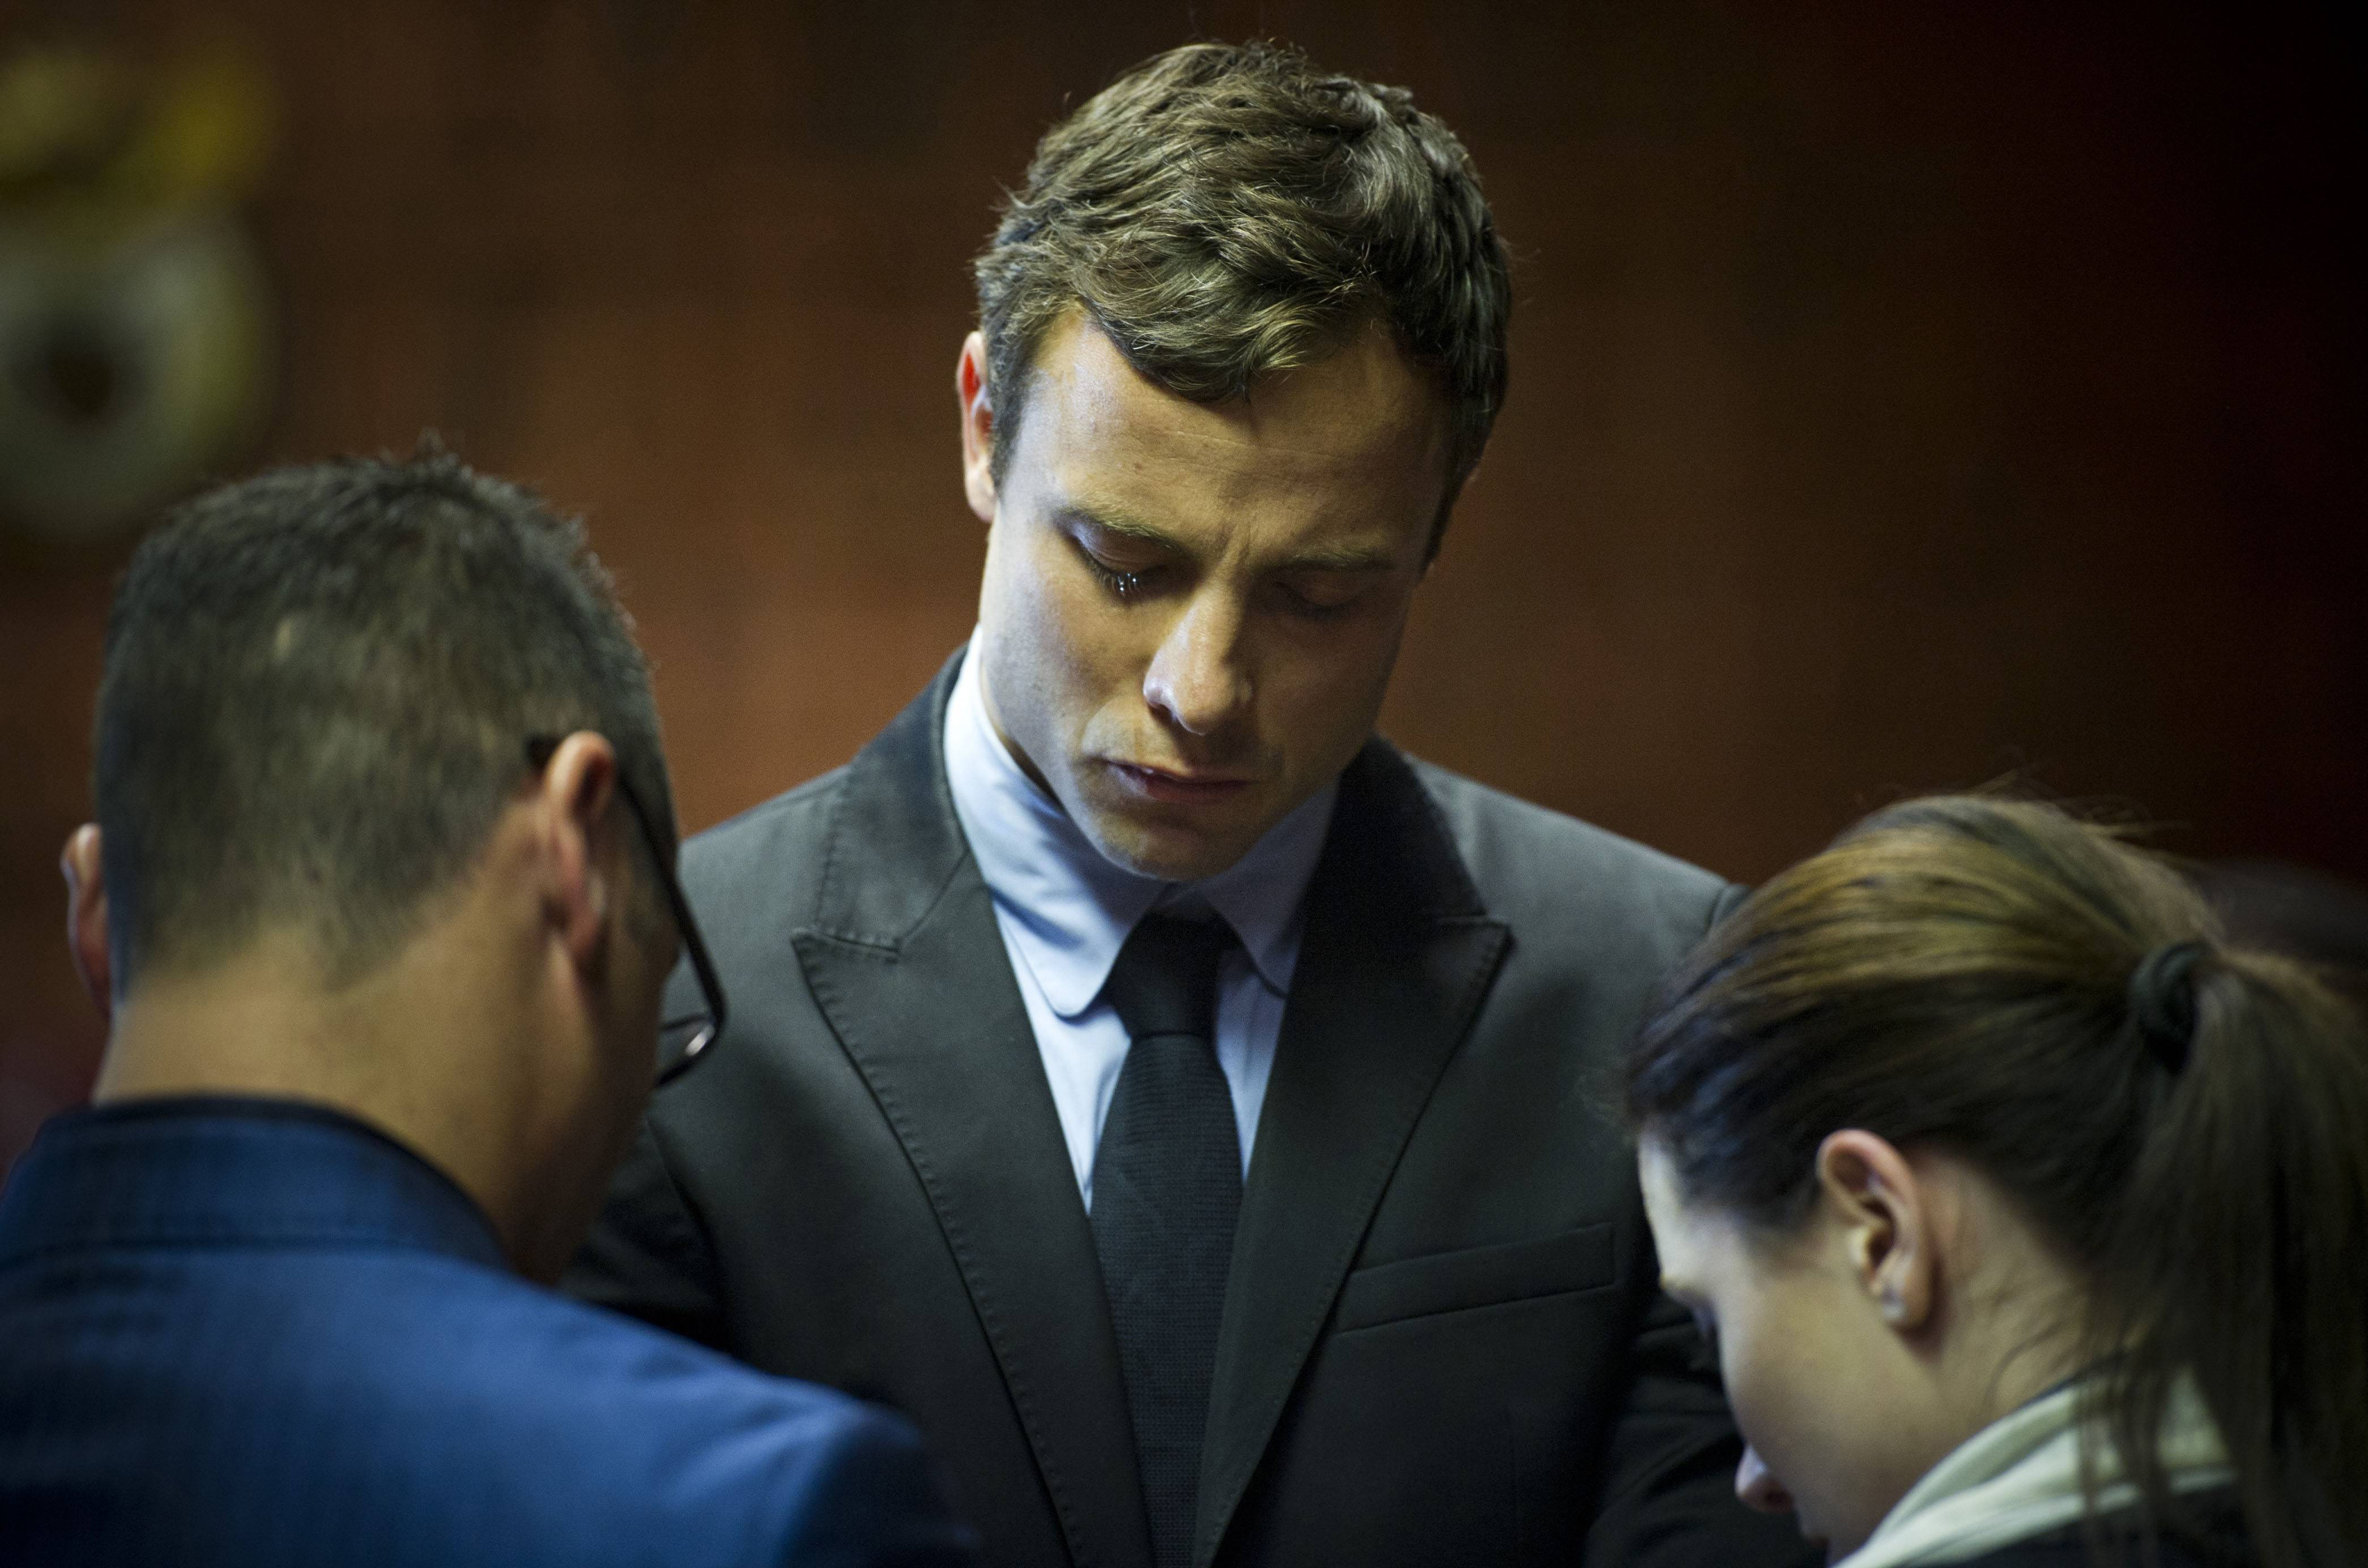 Murder trial of Pistorius to start in South Africa